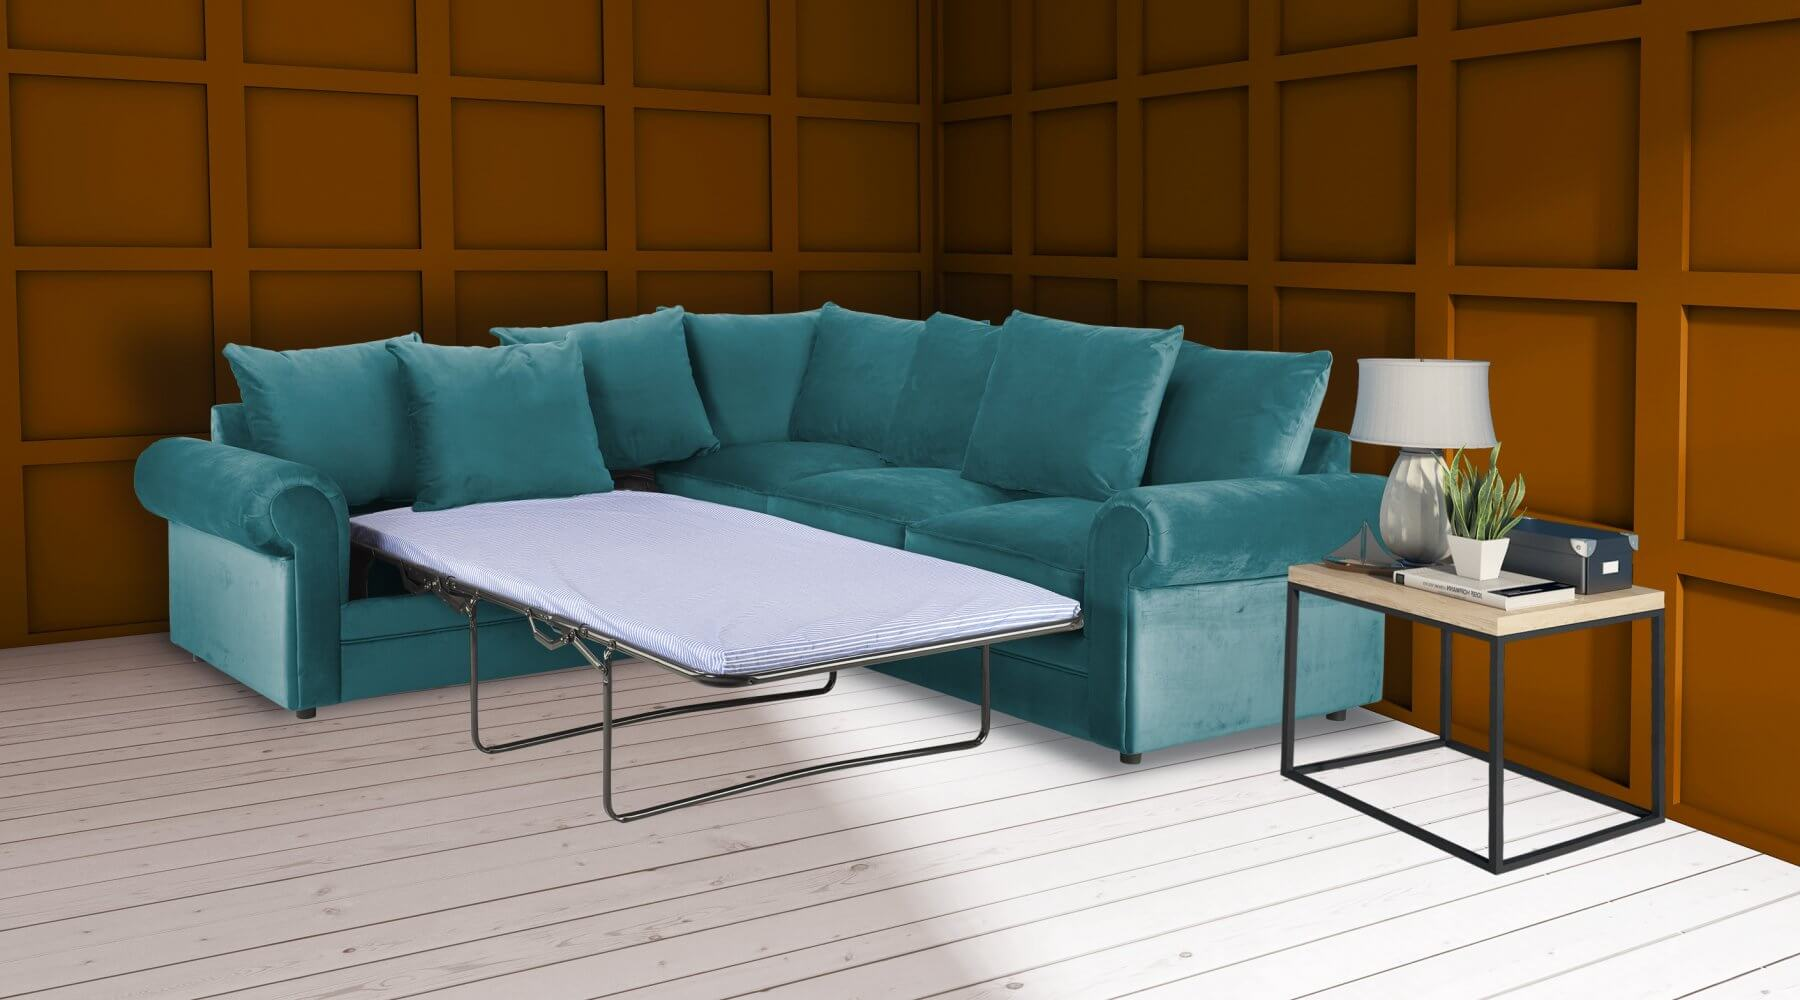 Velvet Turquoise / Teal  2c2 Corner Charlotte Sofa Bed With Scatter Cushions